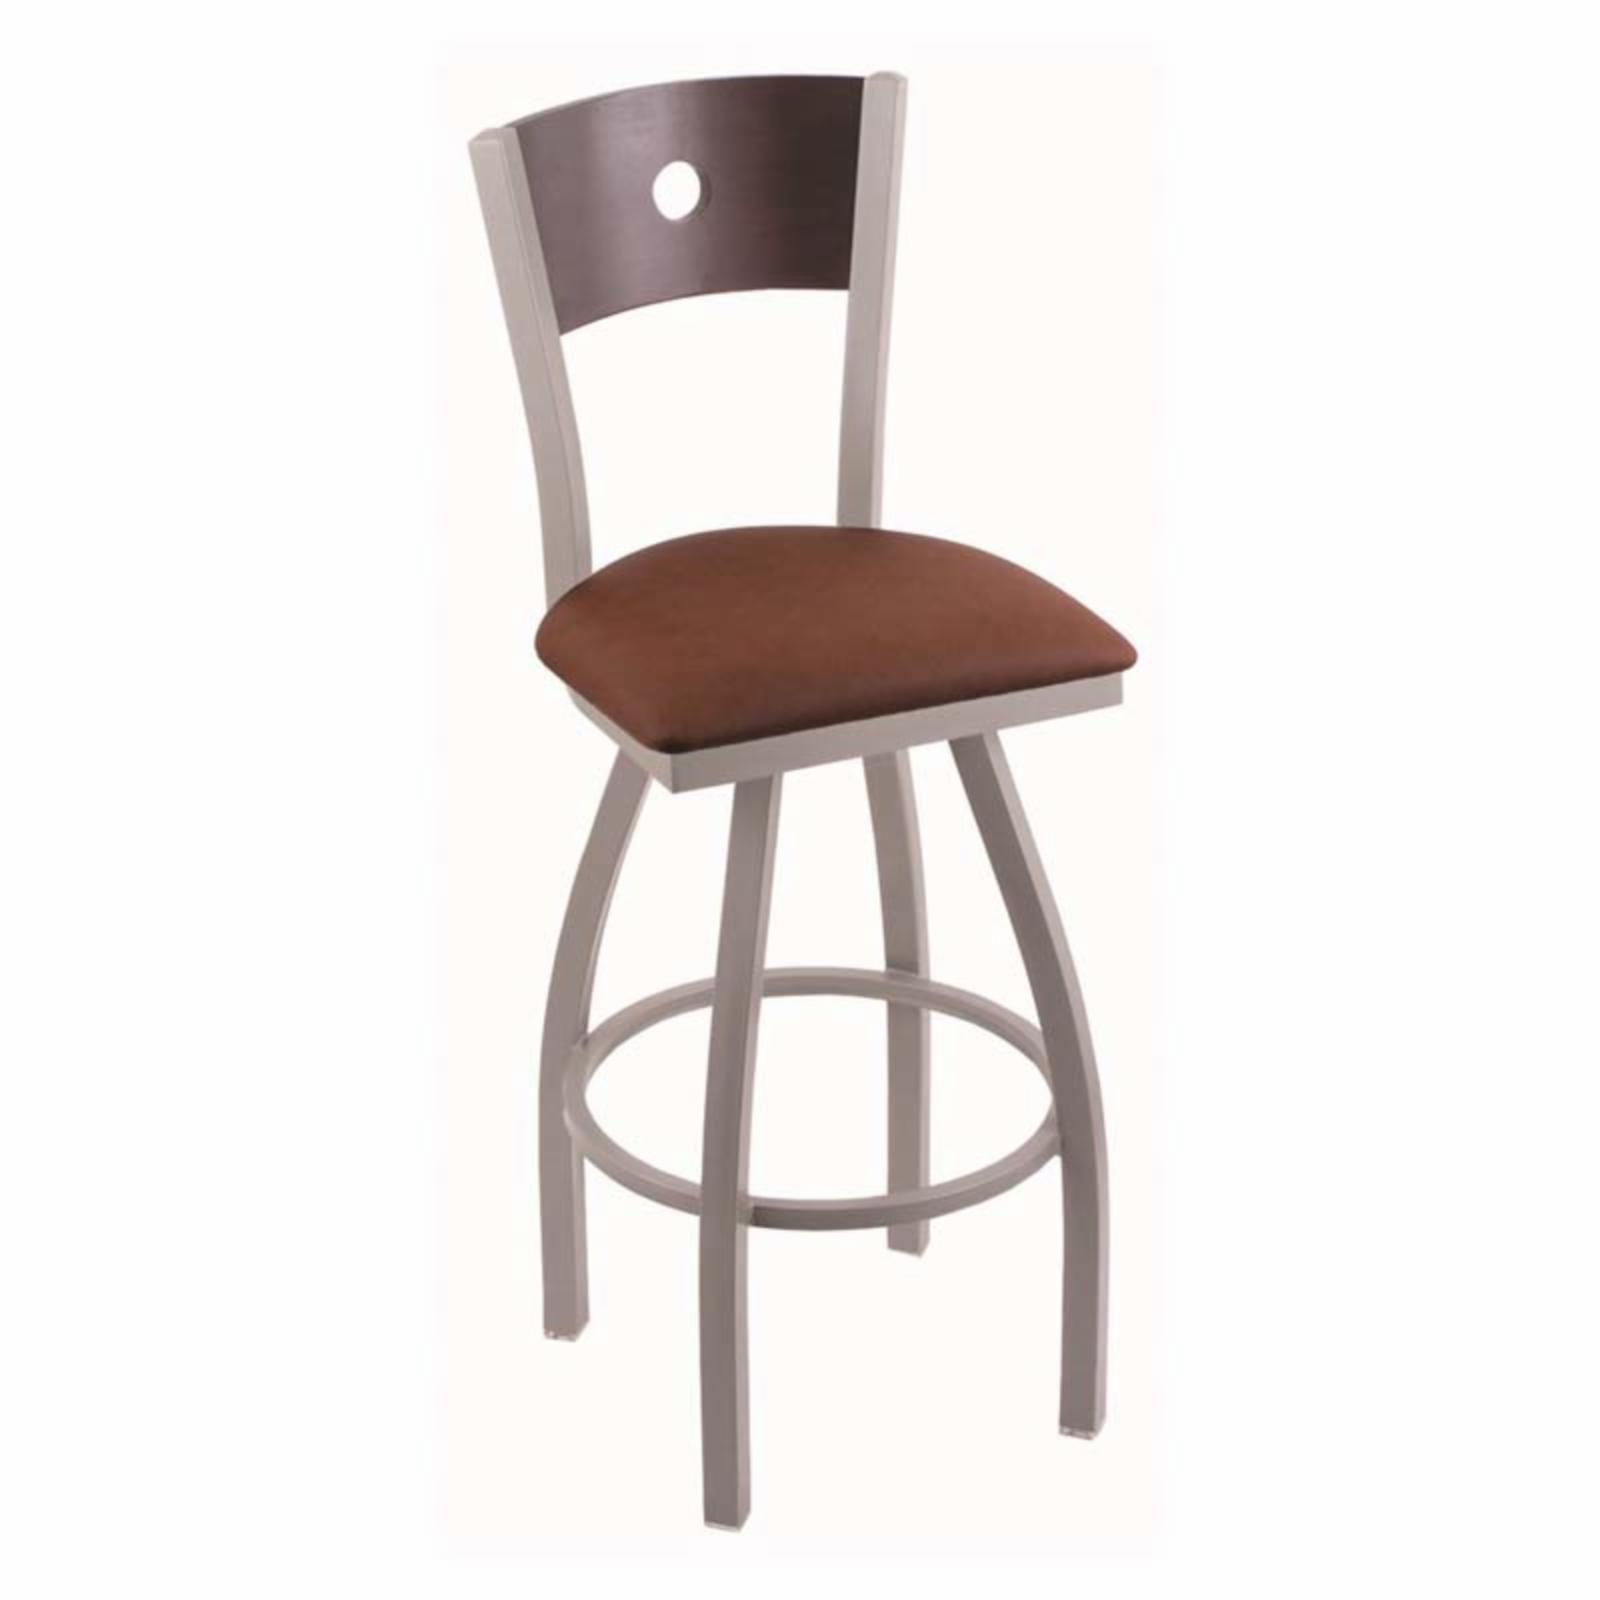 Holland Bar Stool Voltaire 25 in. Metal Swivel Counter Stool with Faux Leather Seat Medium Maple Rein Adobe - 83025BWMEDMPLBREIADO